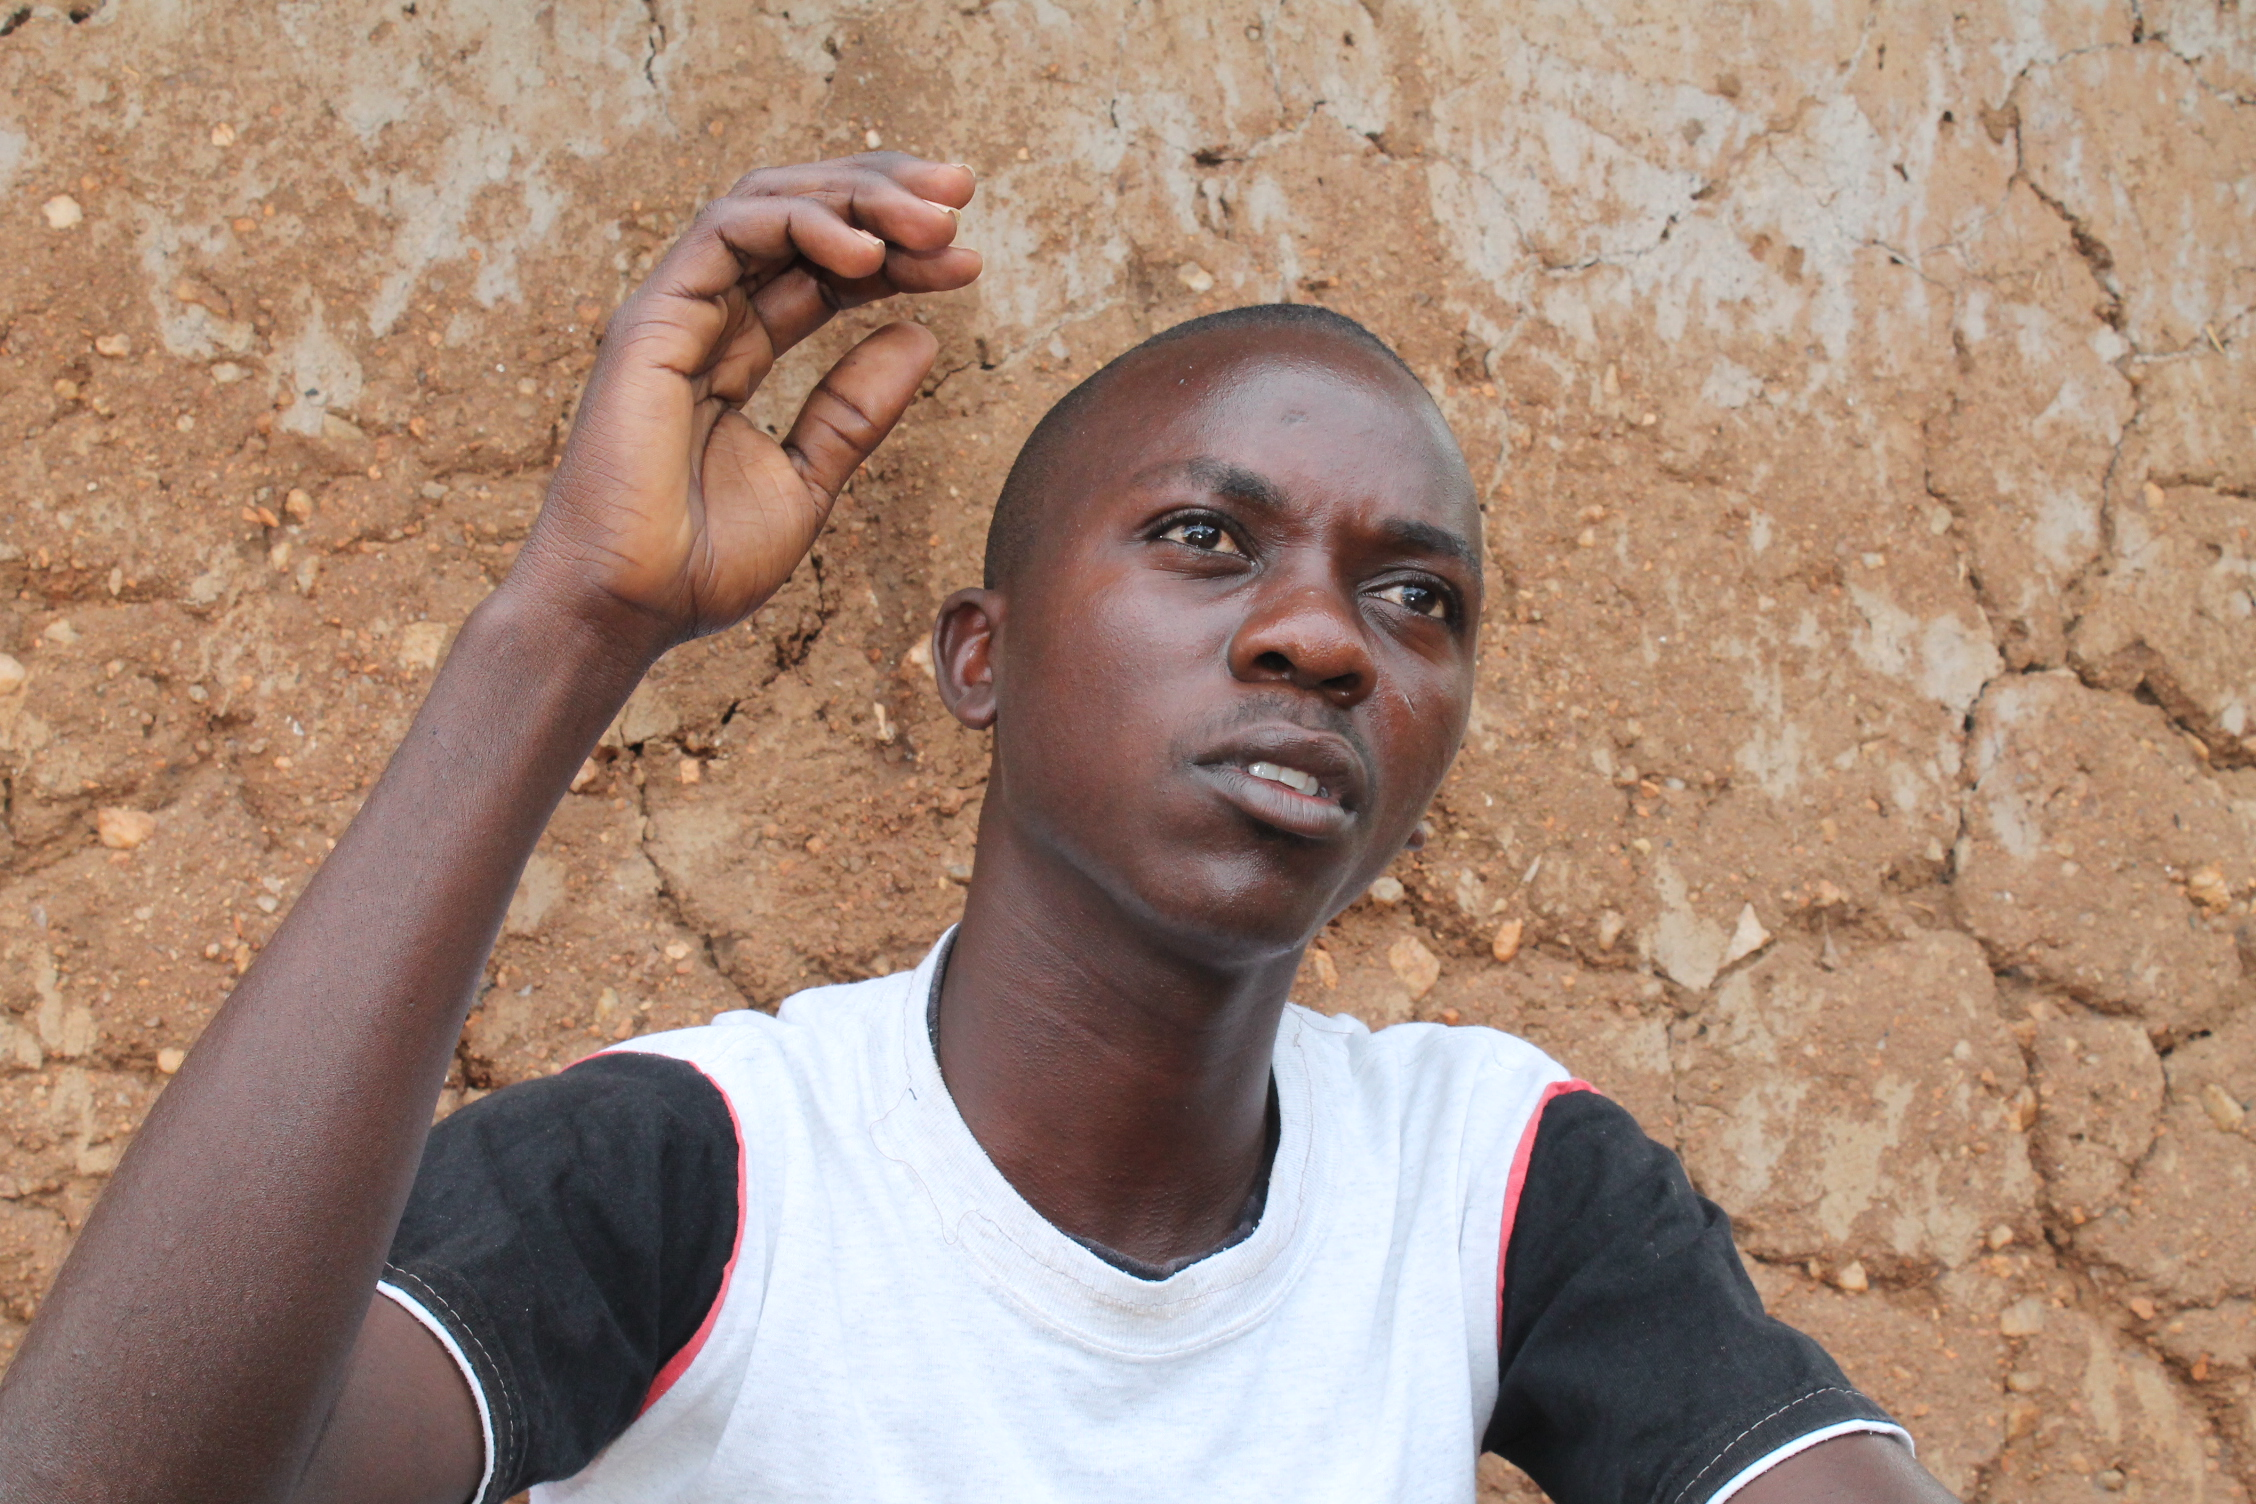 A young Kenyan man sitting in front of a wall